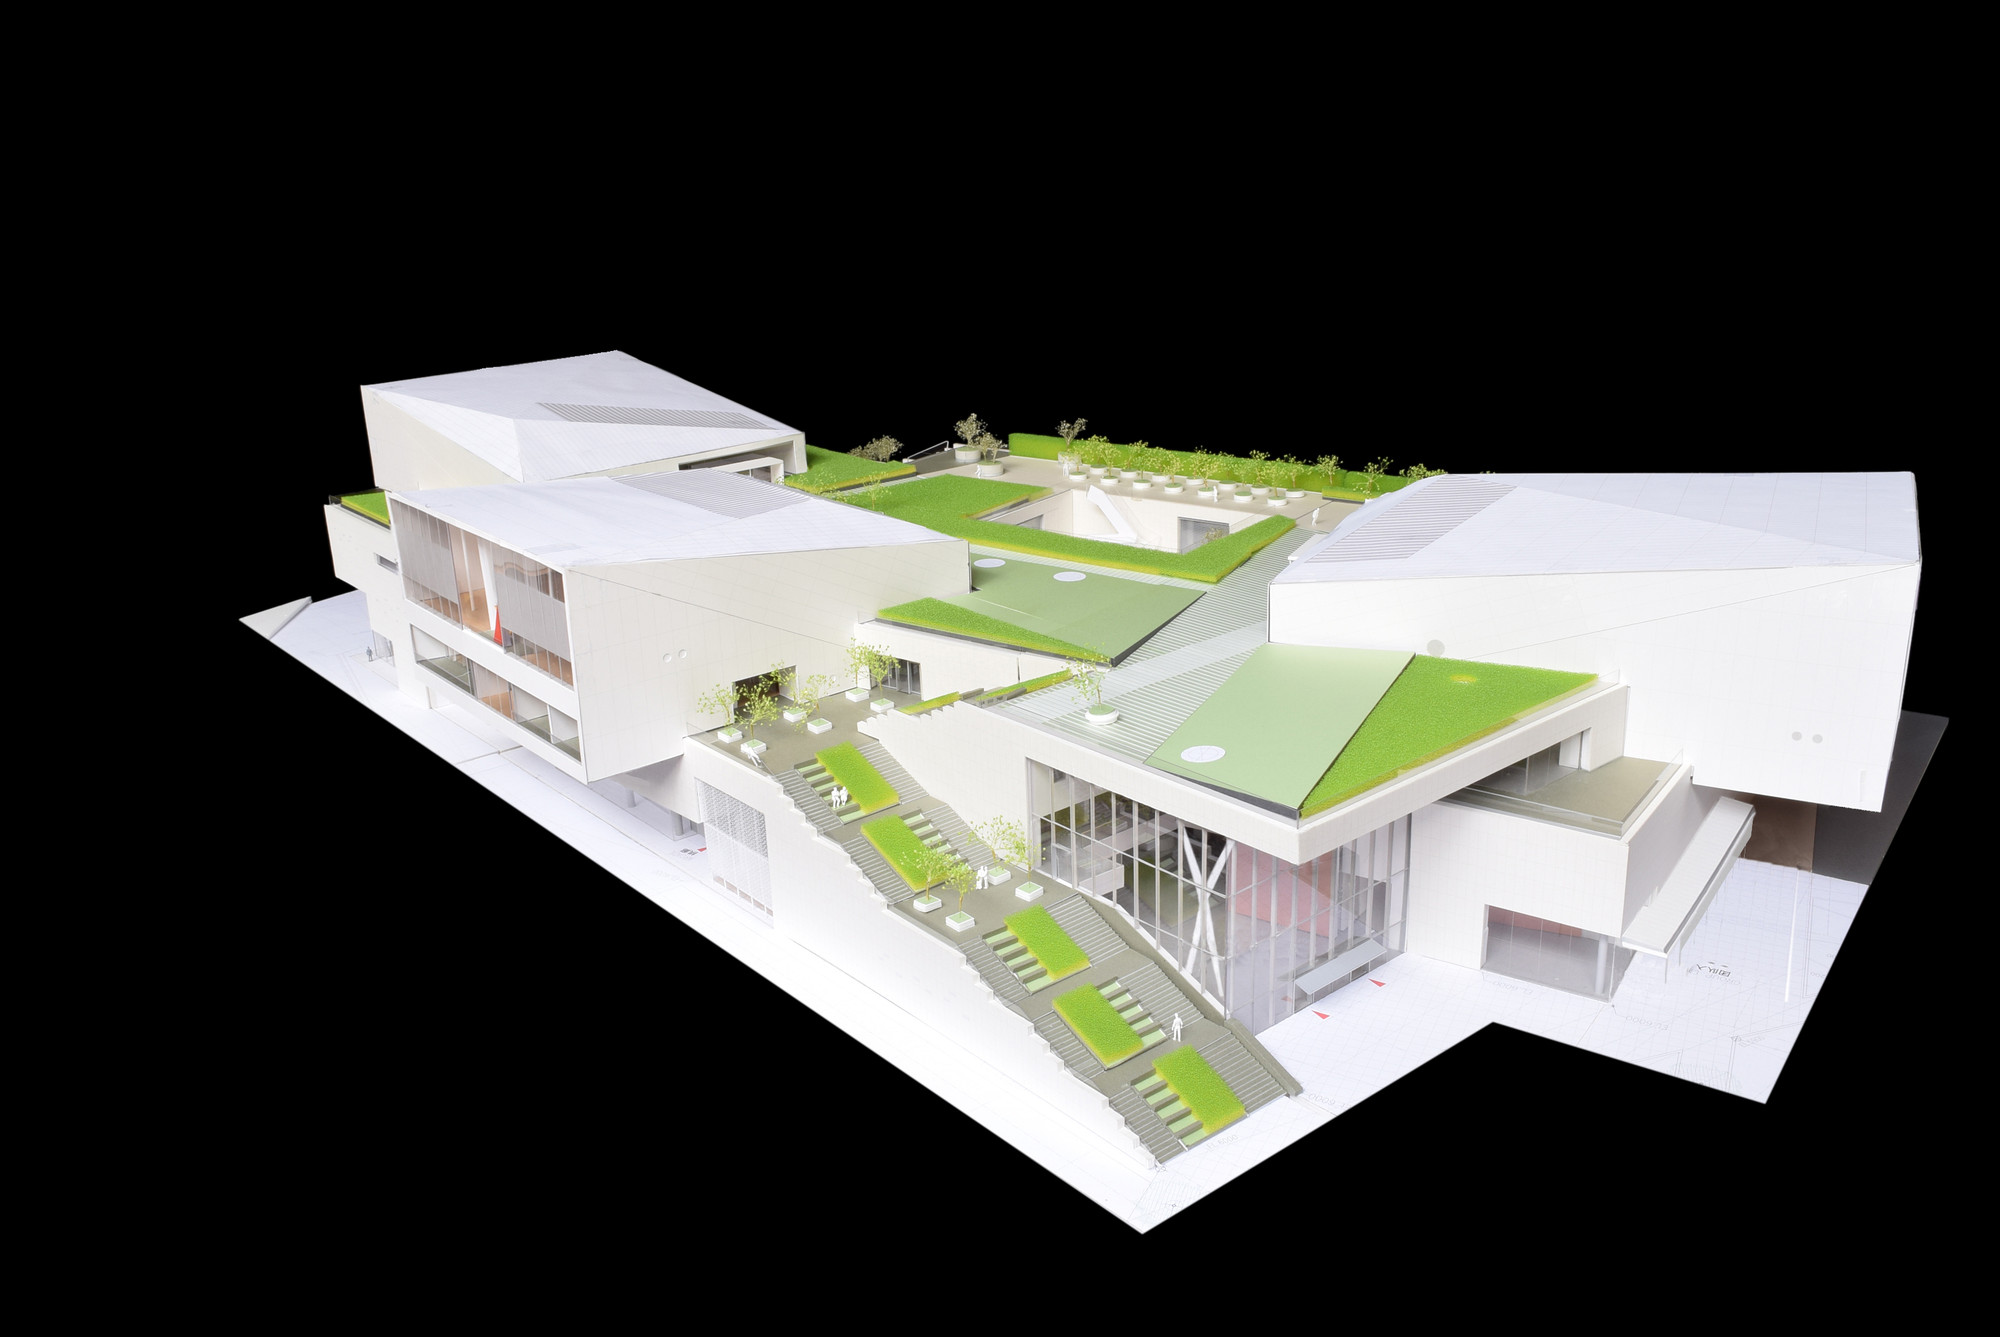 Model of the Shekou Museum. Image © China Merchants Property Development & Maki and Associates